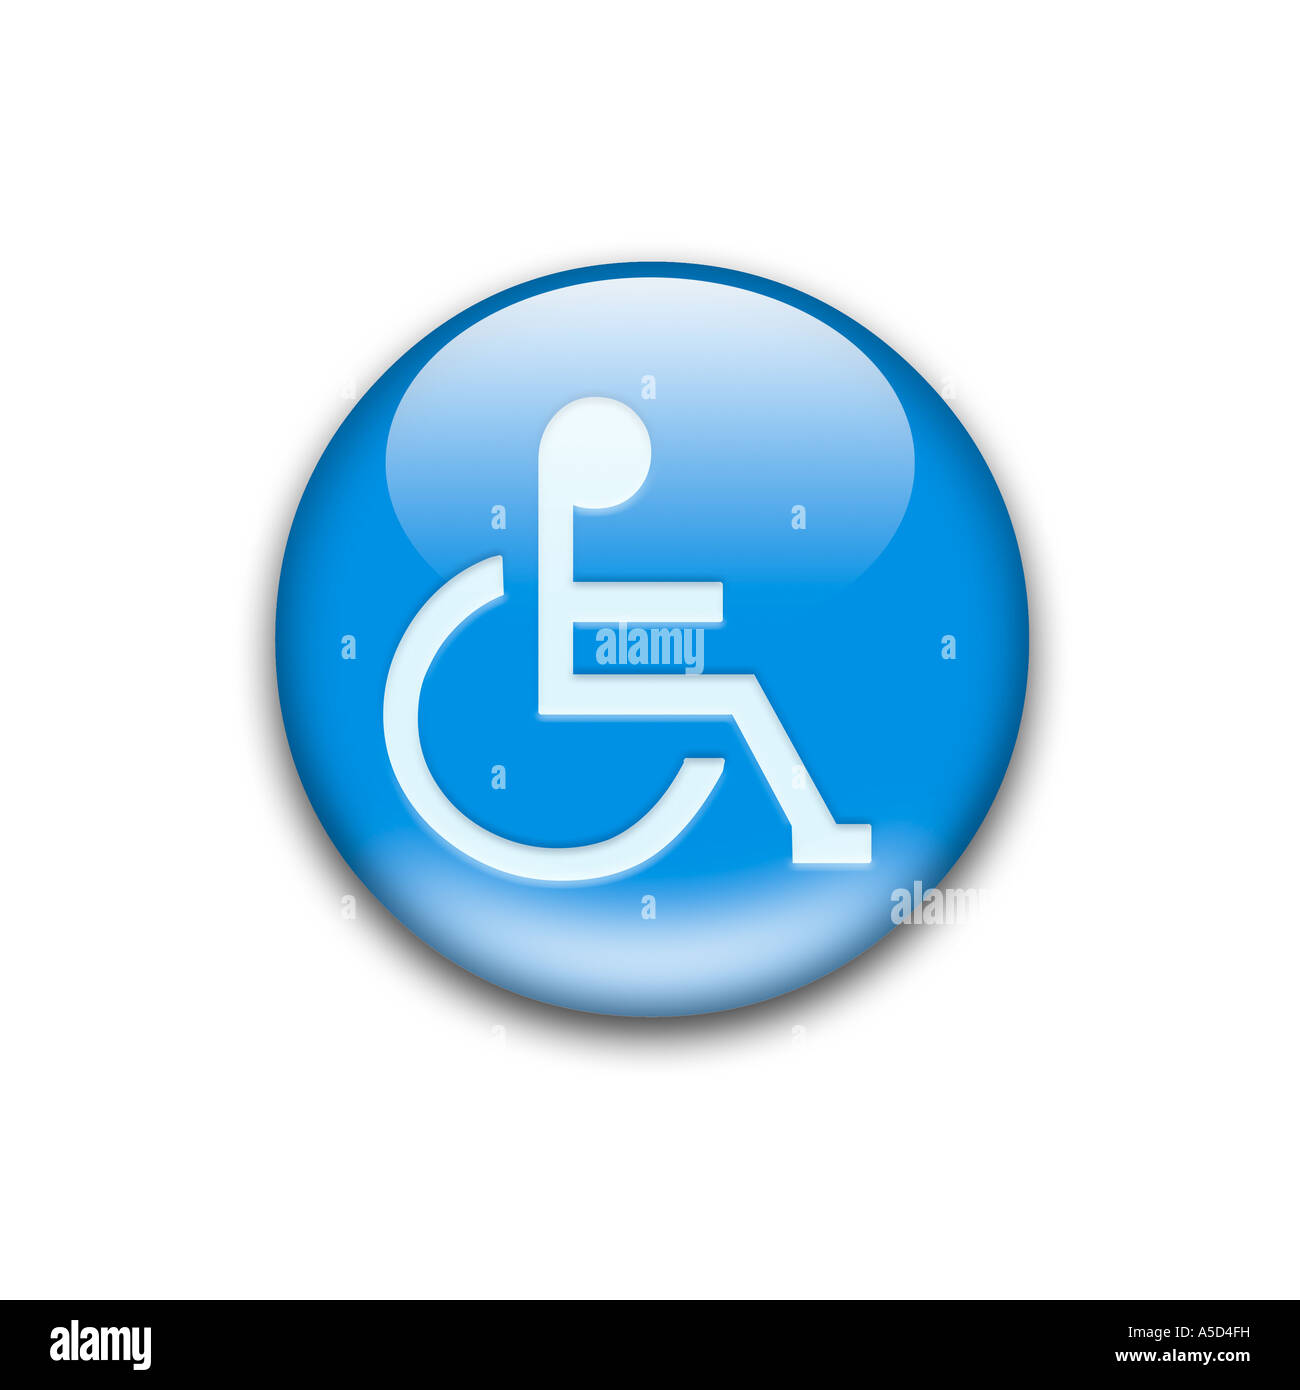 Handicapped symbol stock photo royalty free image 11275444 alamy handicapped symbol handicapped symbol stock photo buycottarizona